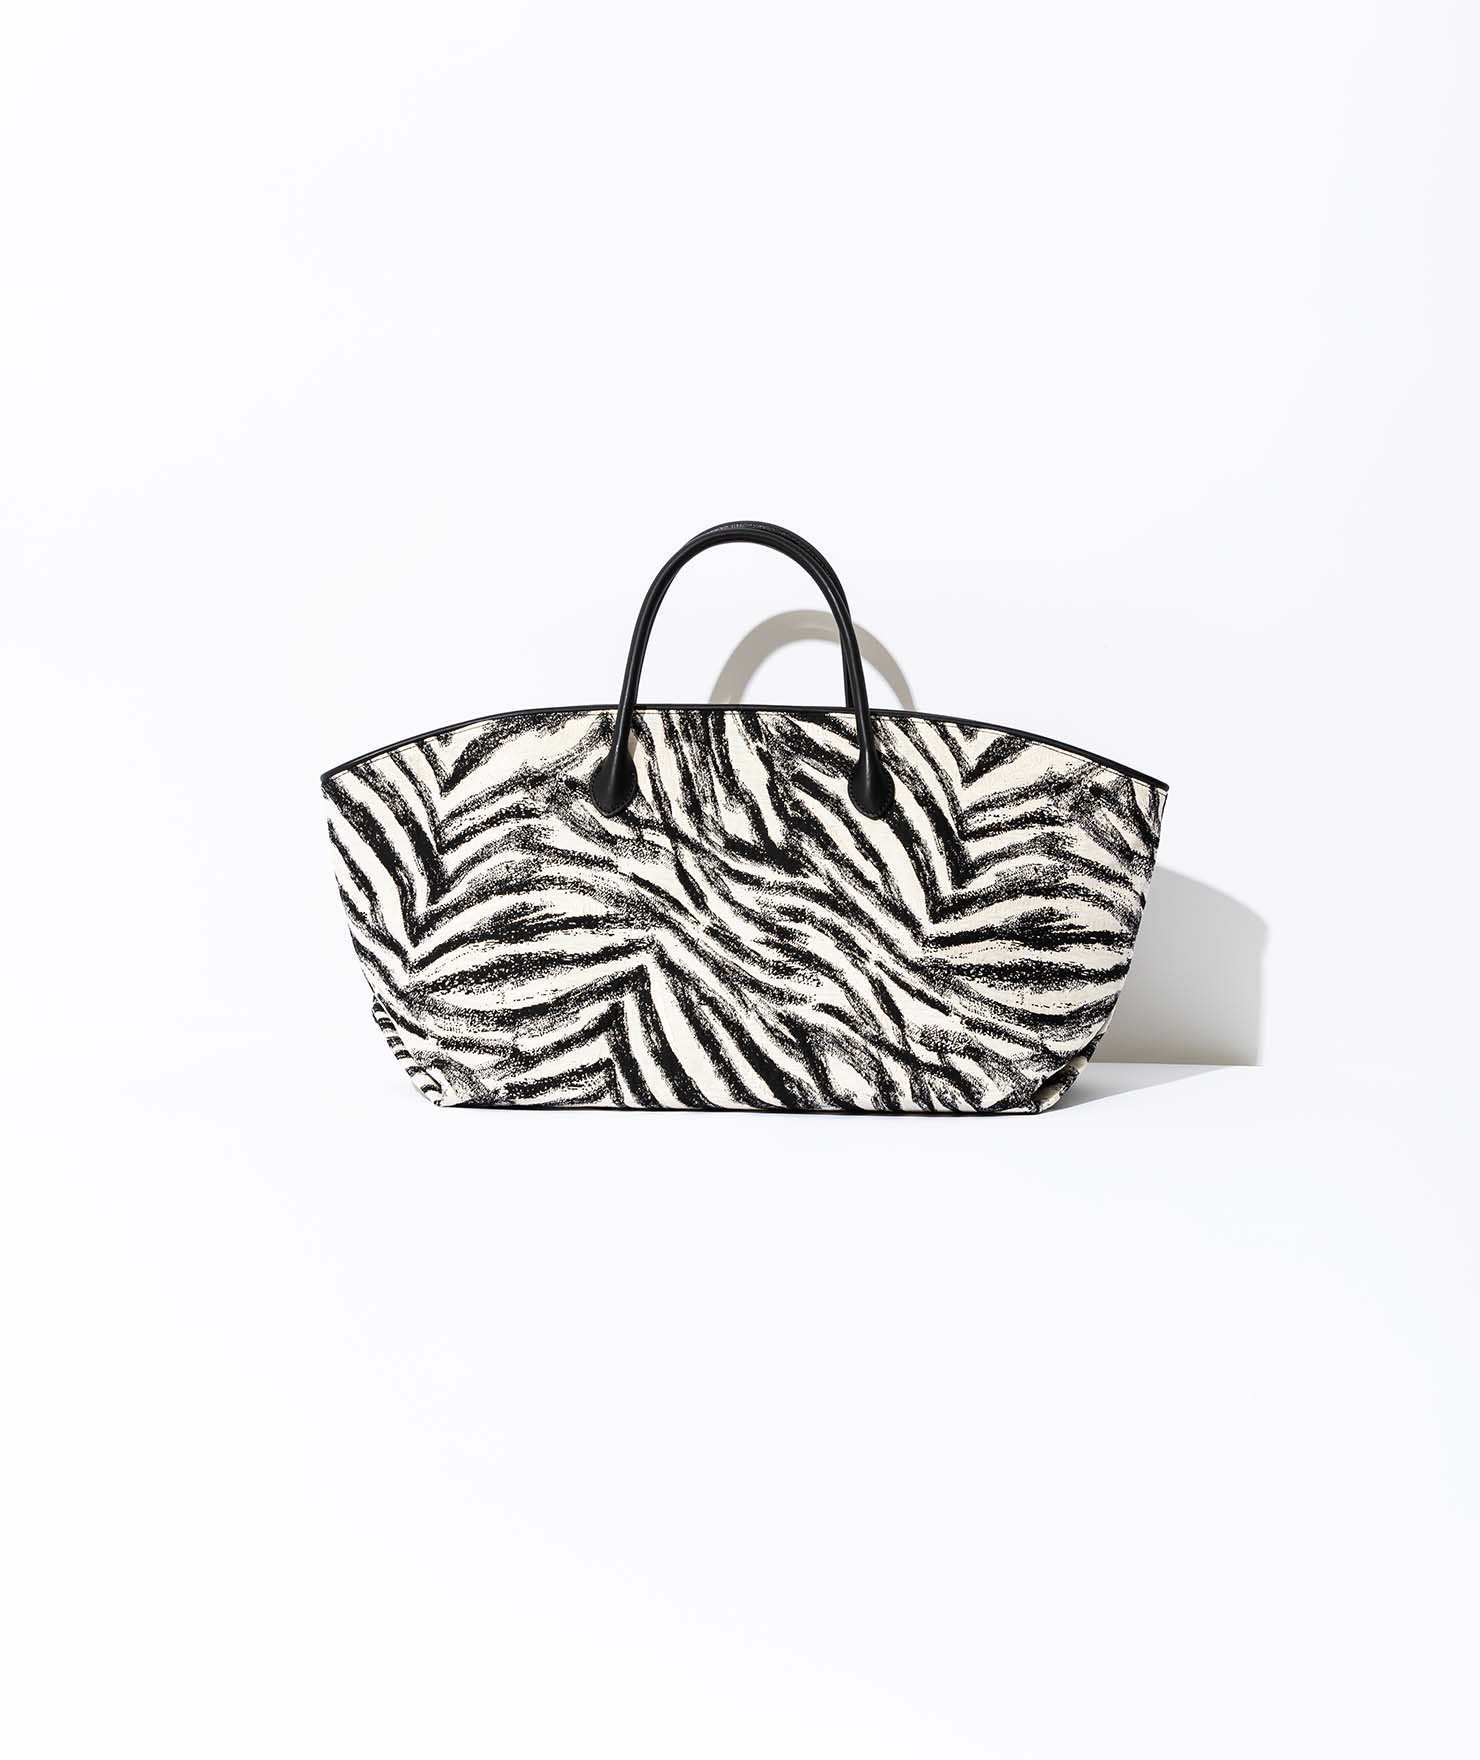 MARCHE BAG(マルシェバッグ)